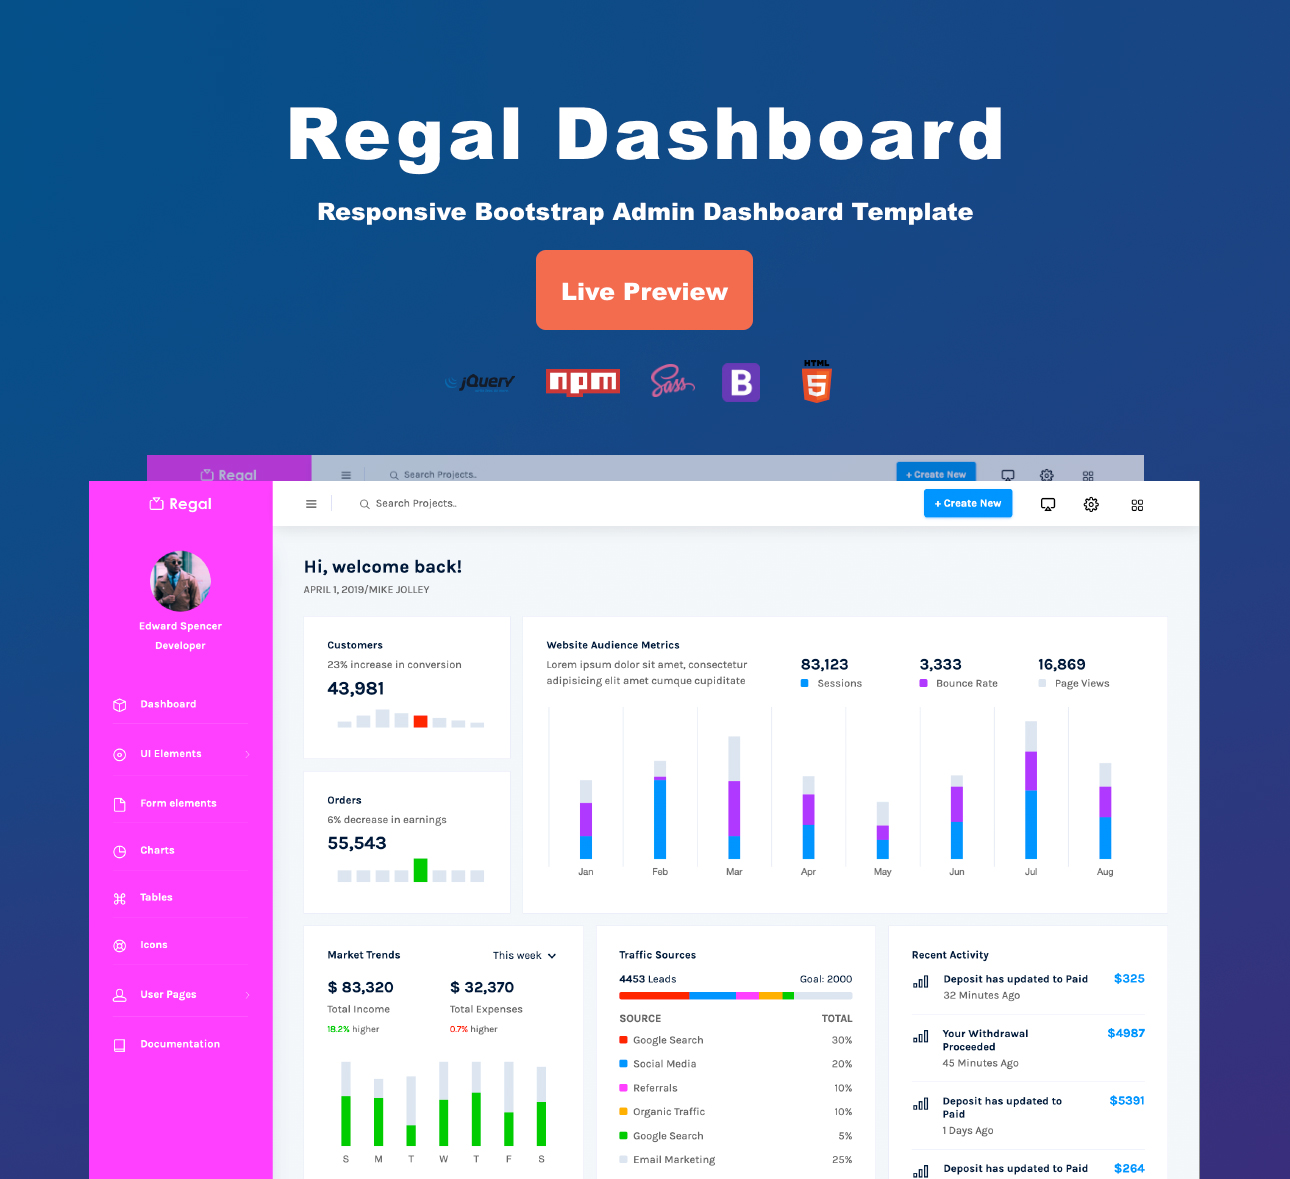 Regal Dashboard